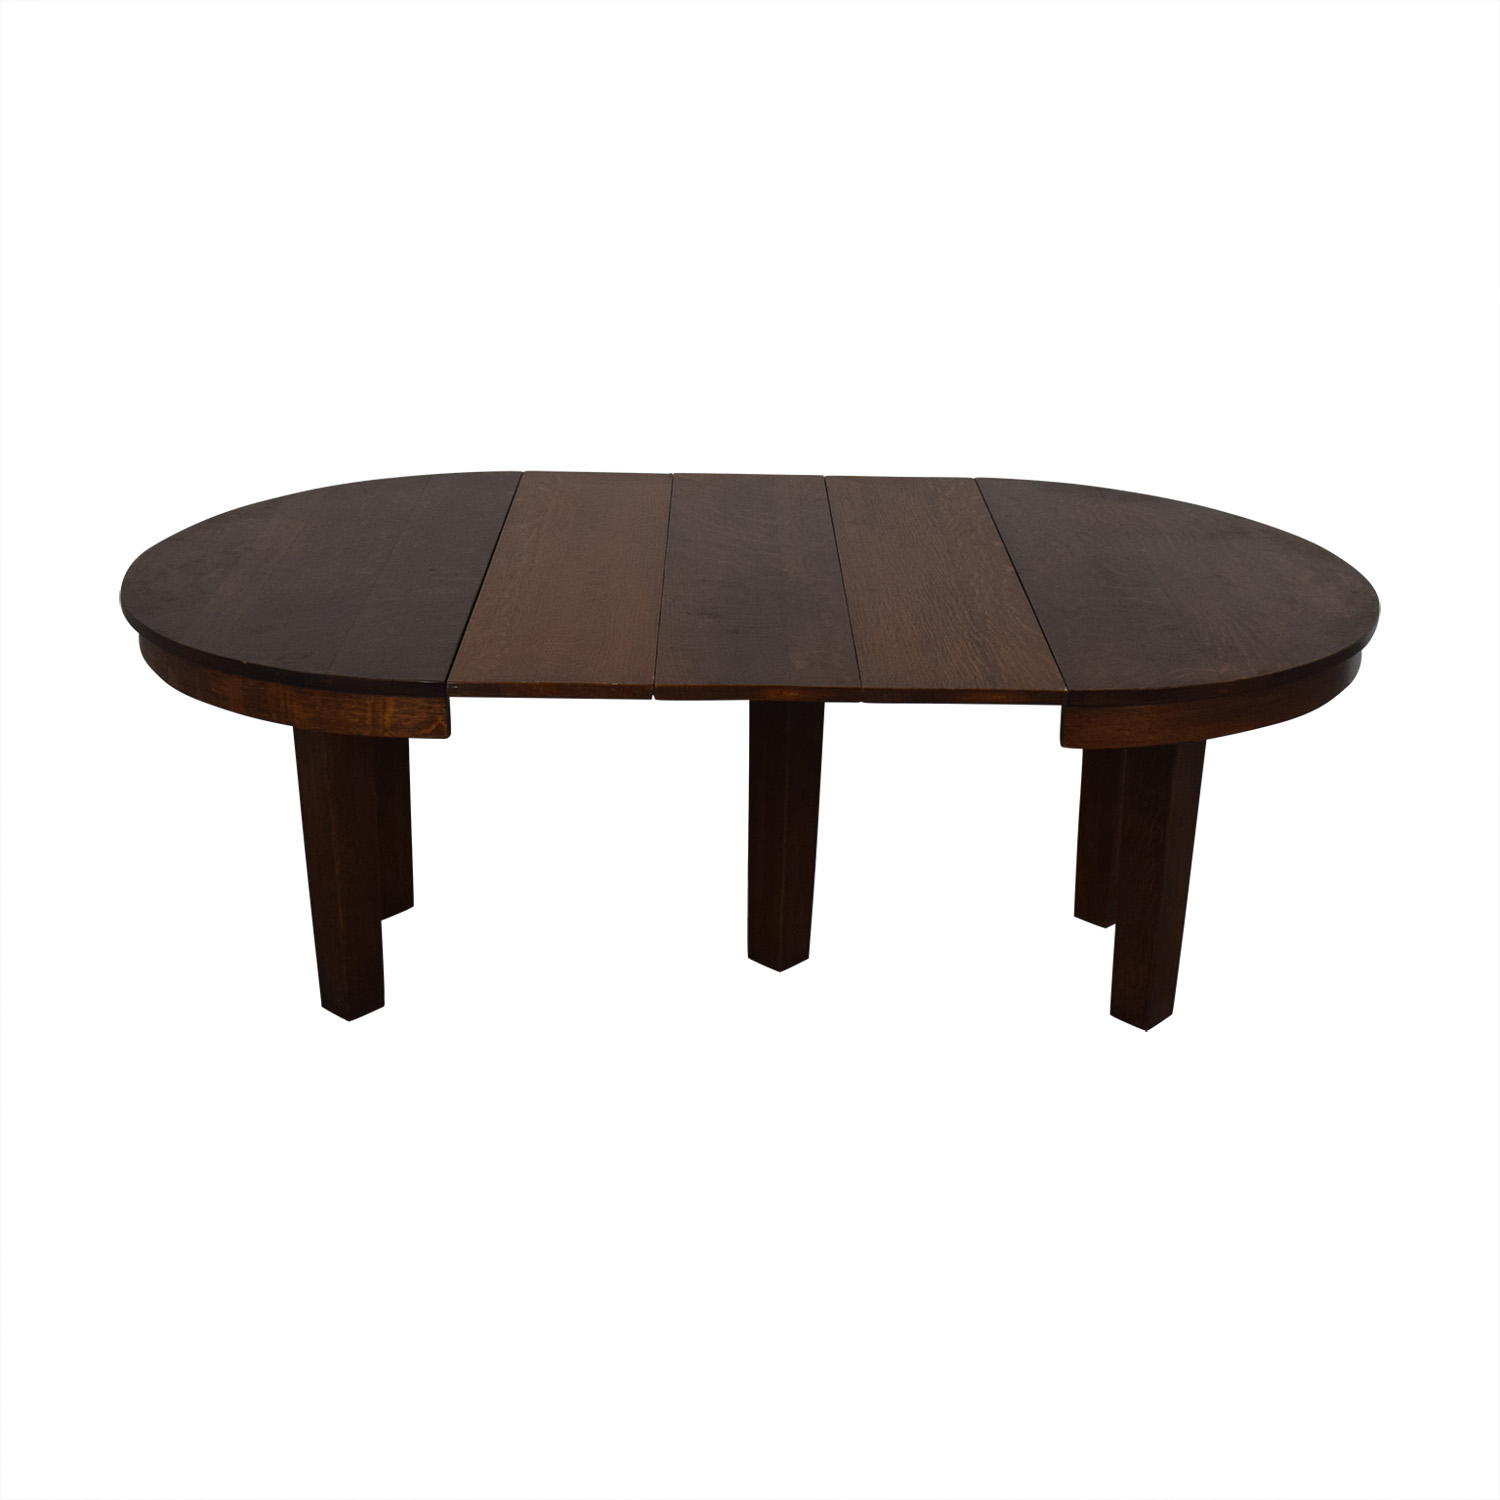 shop Limbert Limbert Mission Extendable Table online